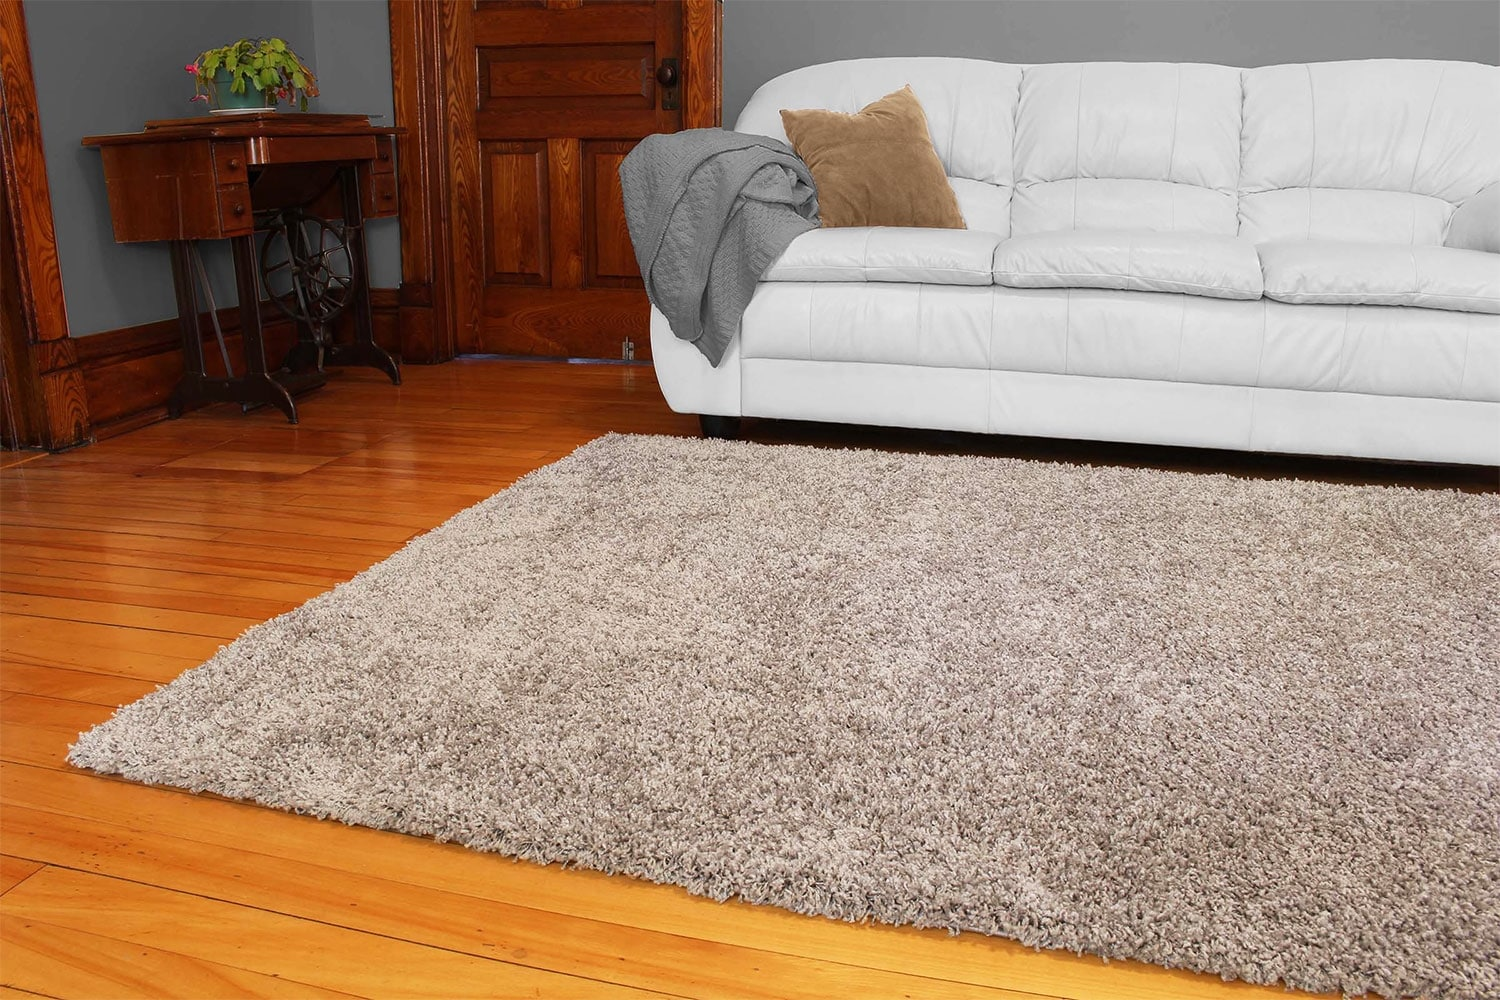 Rugs - Shaggy Dark Grey Area Rug – 8' x 10'